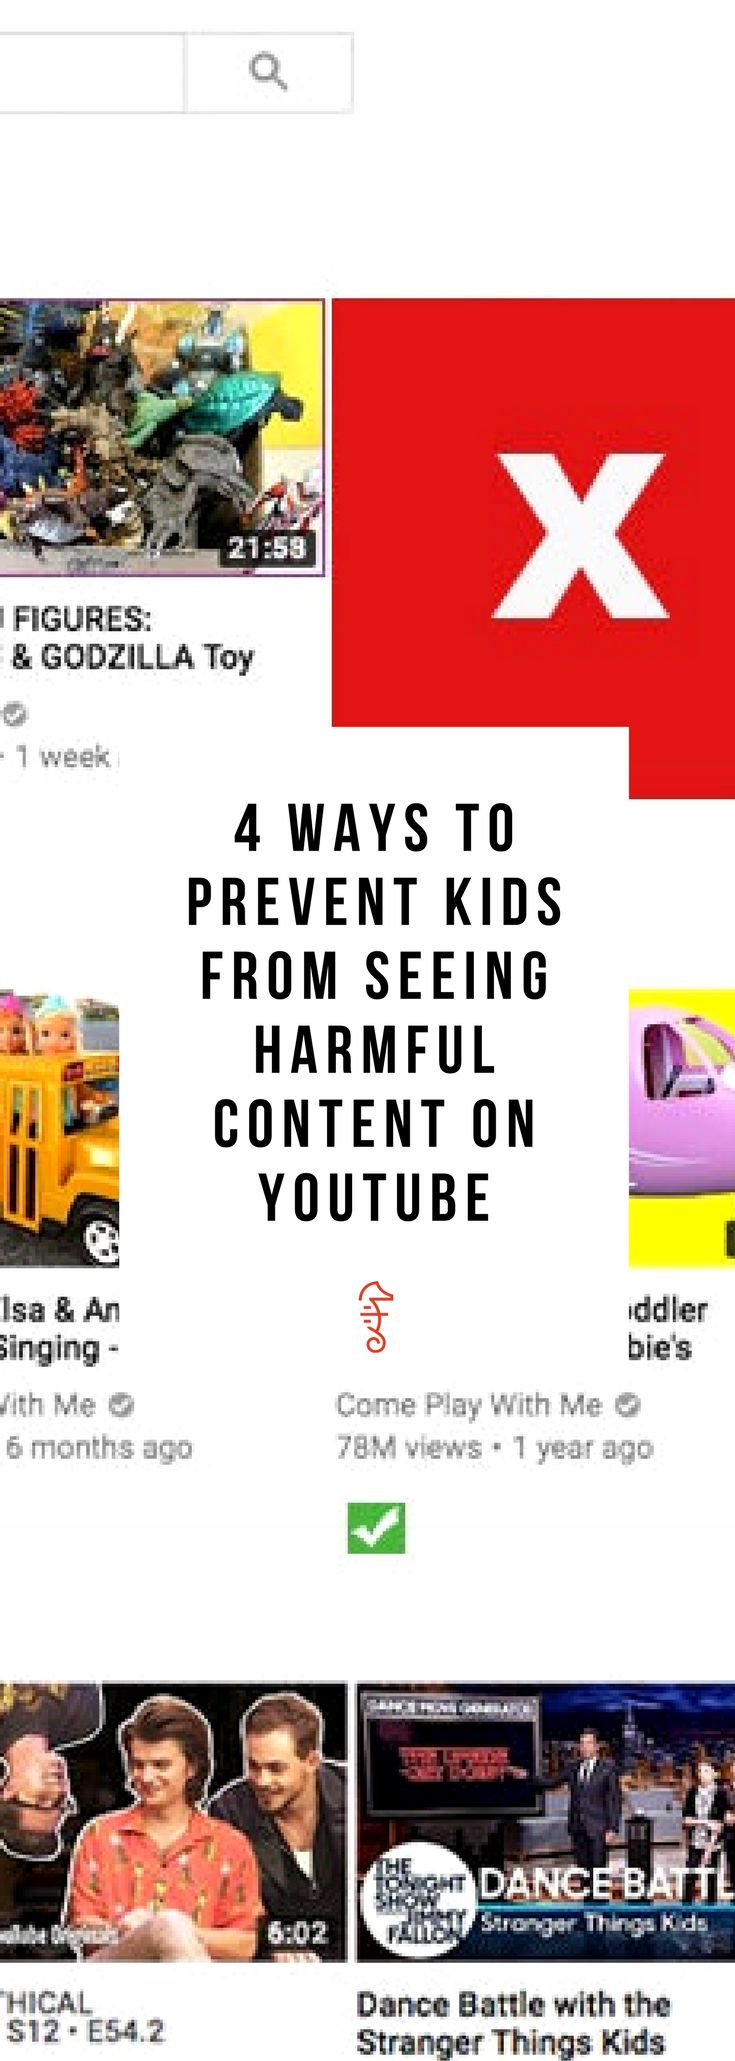 Parenting advice on YouTube kids safety, especially around parental controls!